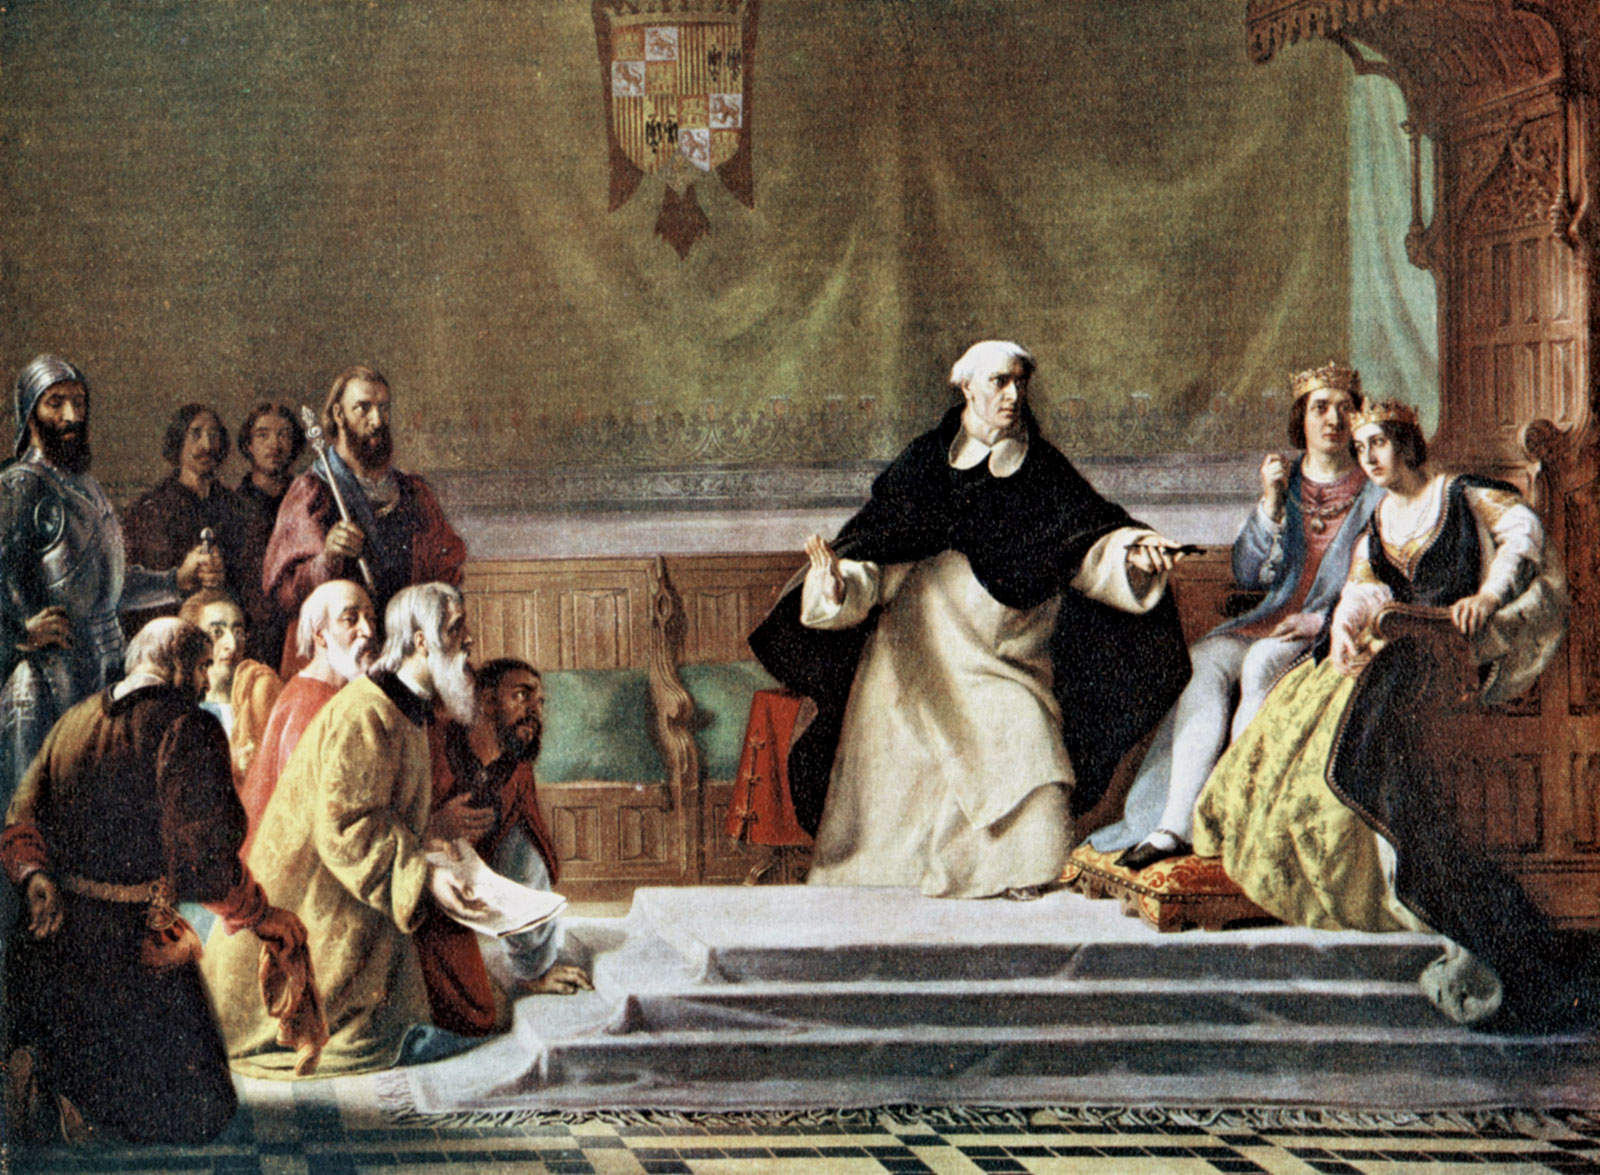 Goa Inquisition: How it all began in Spain